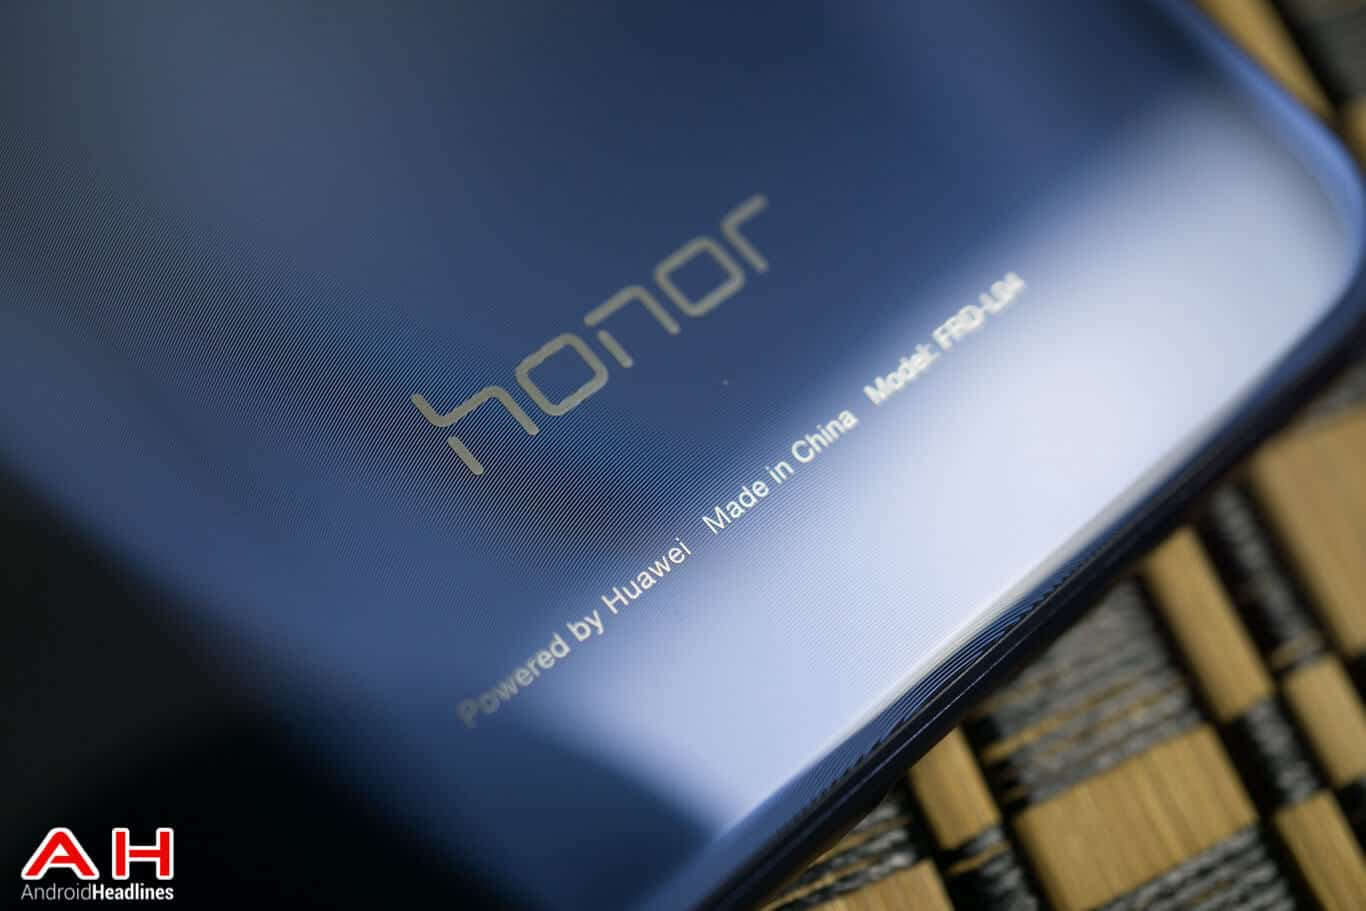 Honor-8-Review-Proper-AM-AH-6